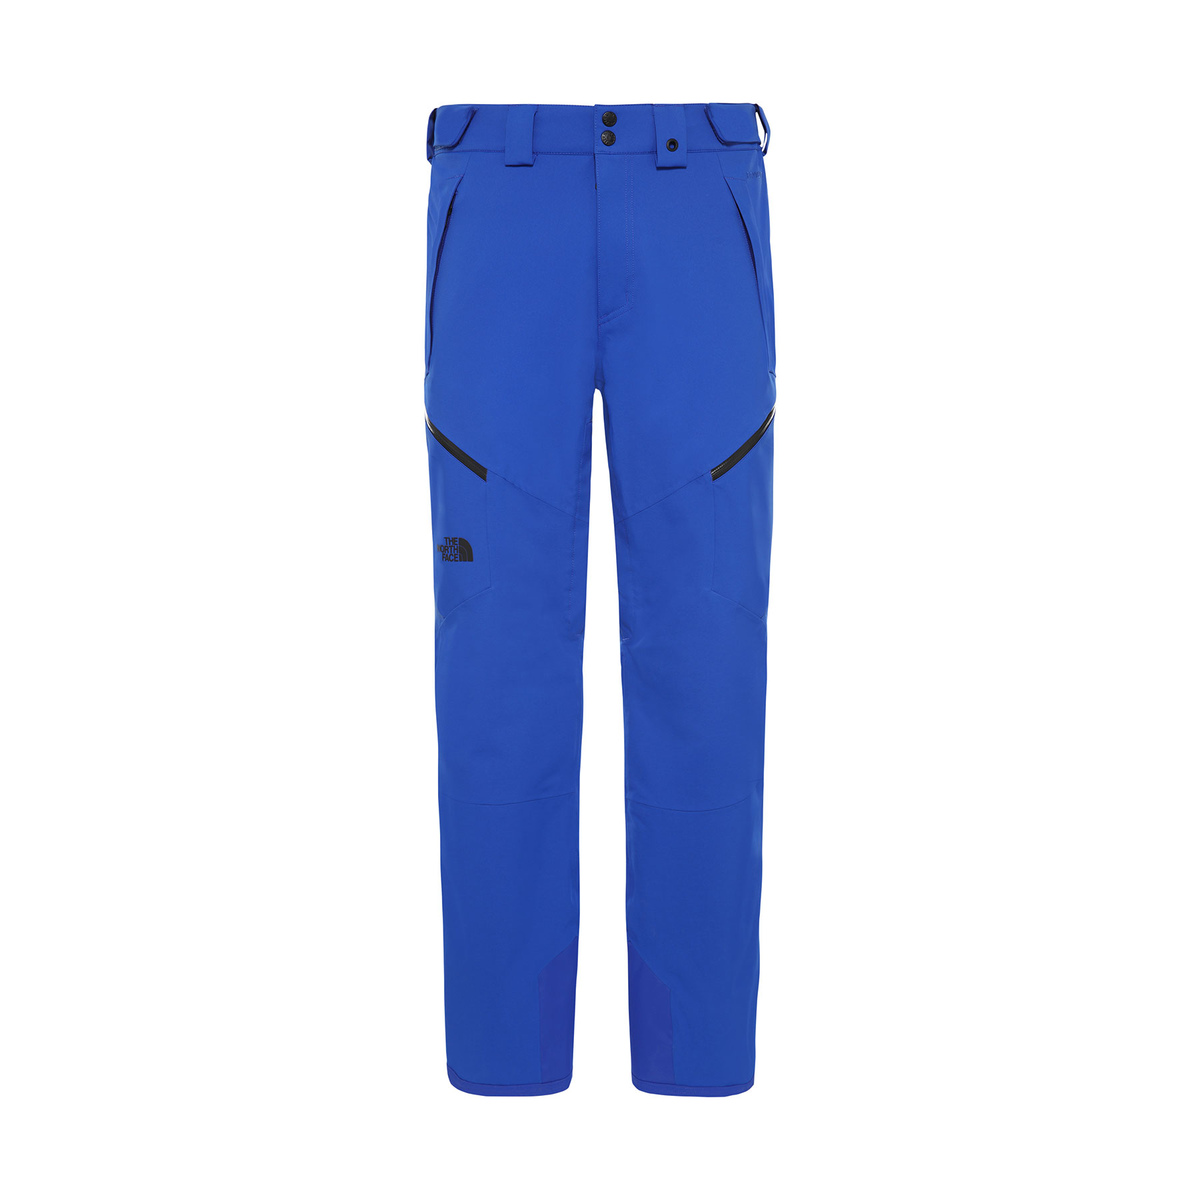 Prezzi The north face pantaloni chakal